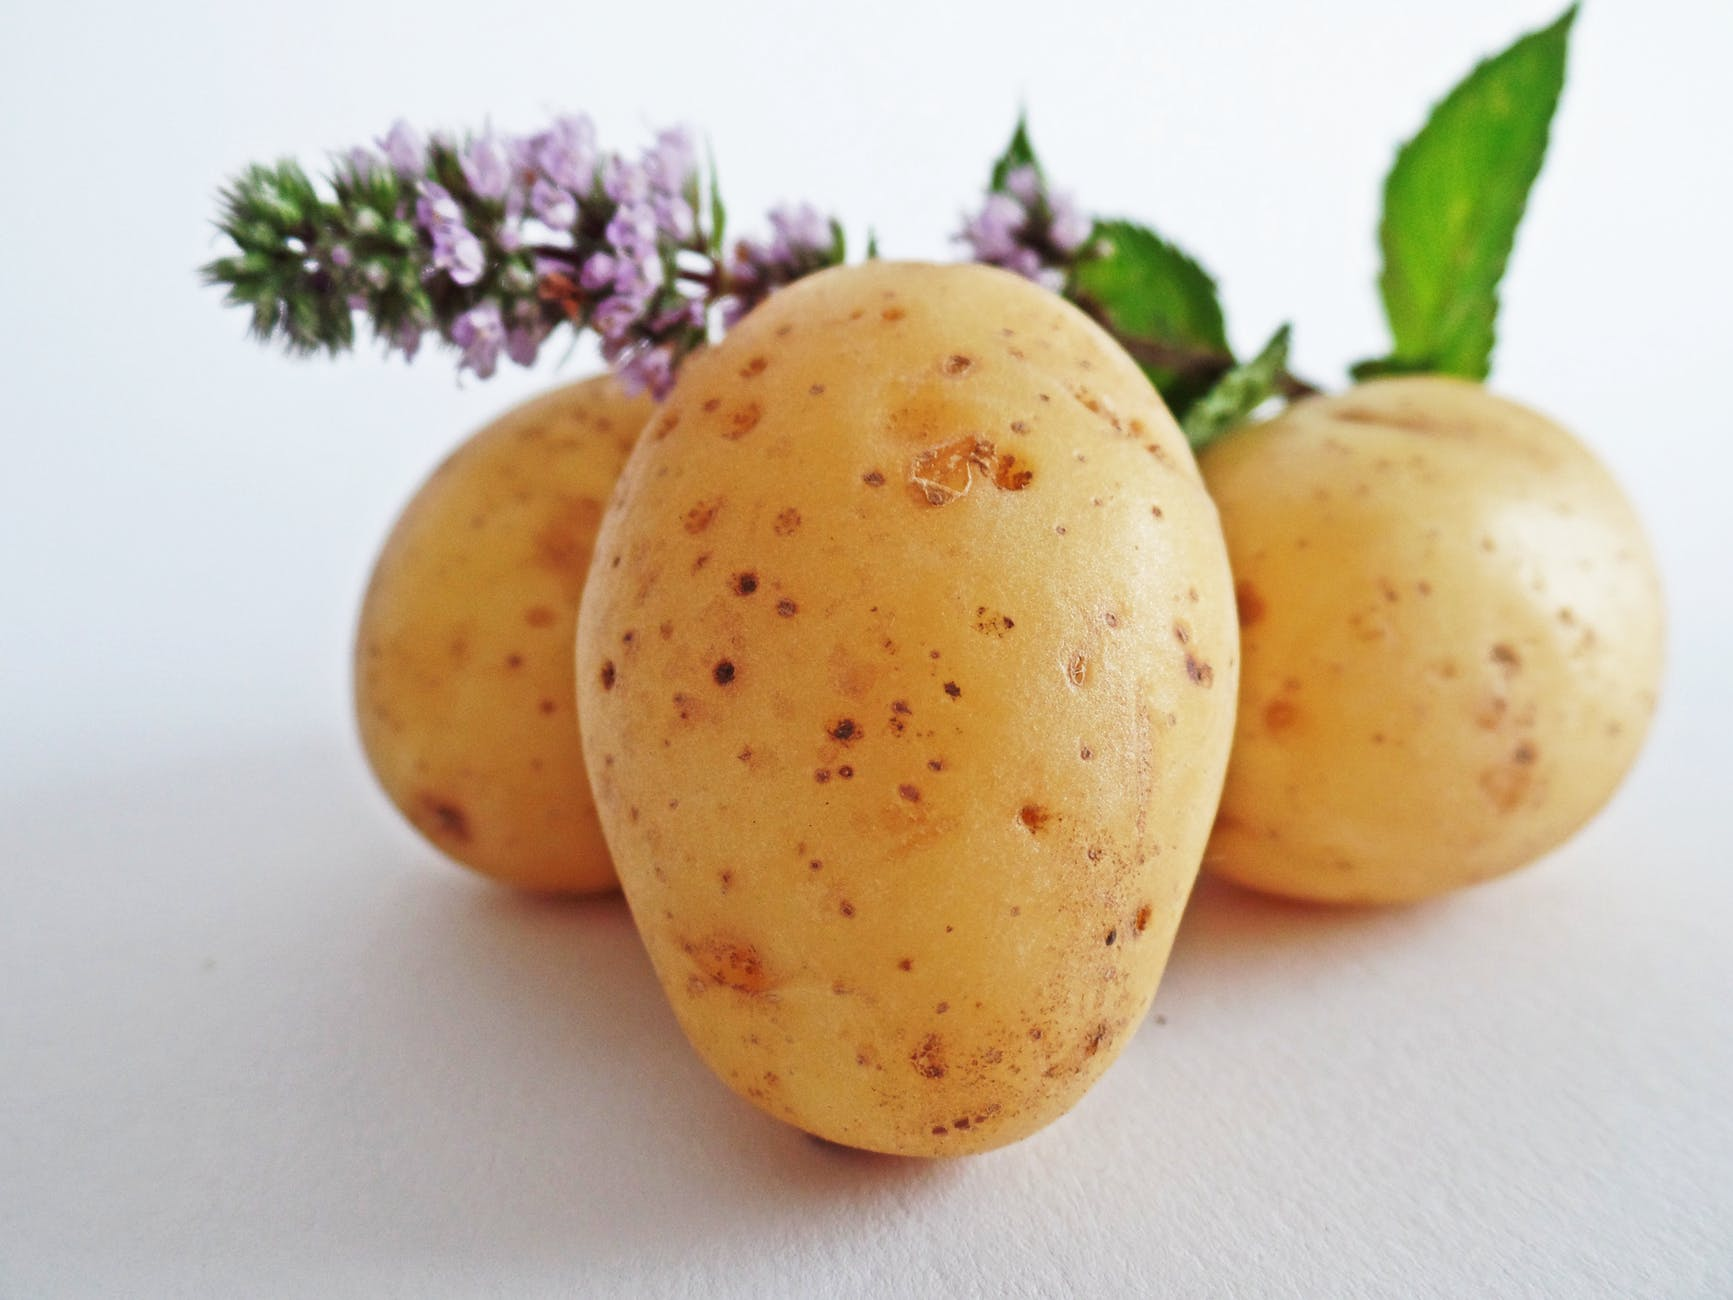 potatoes-vegetables-field-eat-51157.jpeg